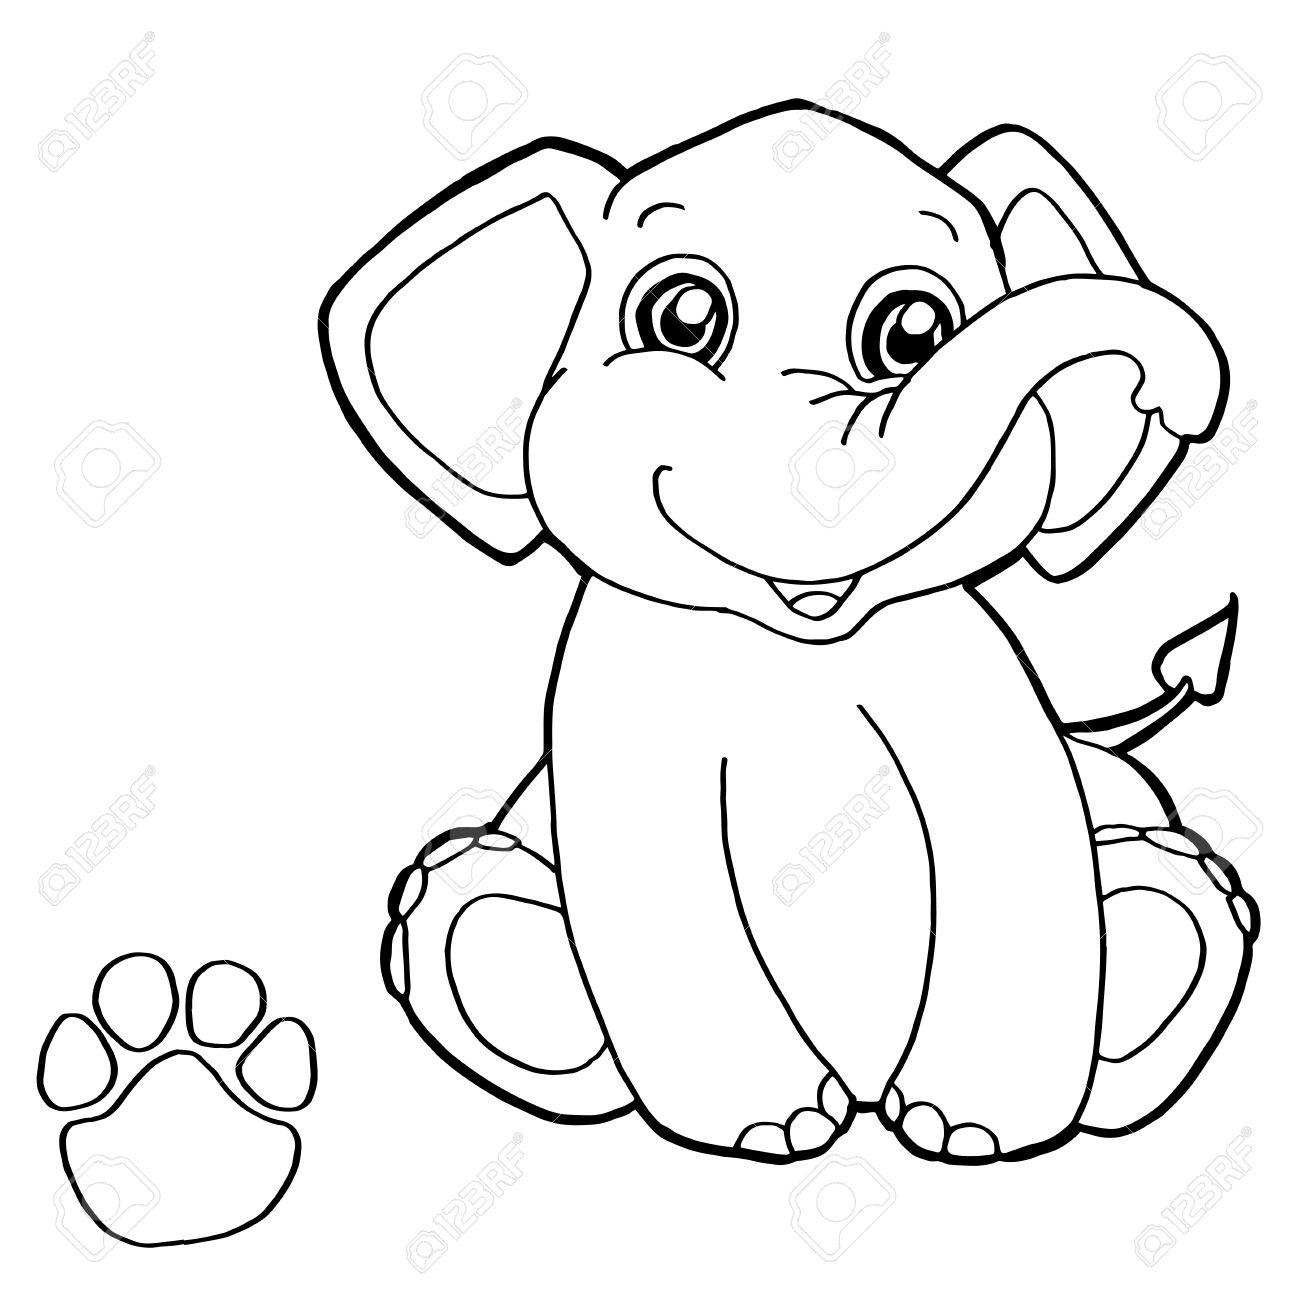 Paw Print With Elephant Coloring Page Vector Stock